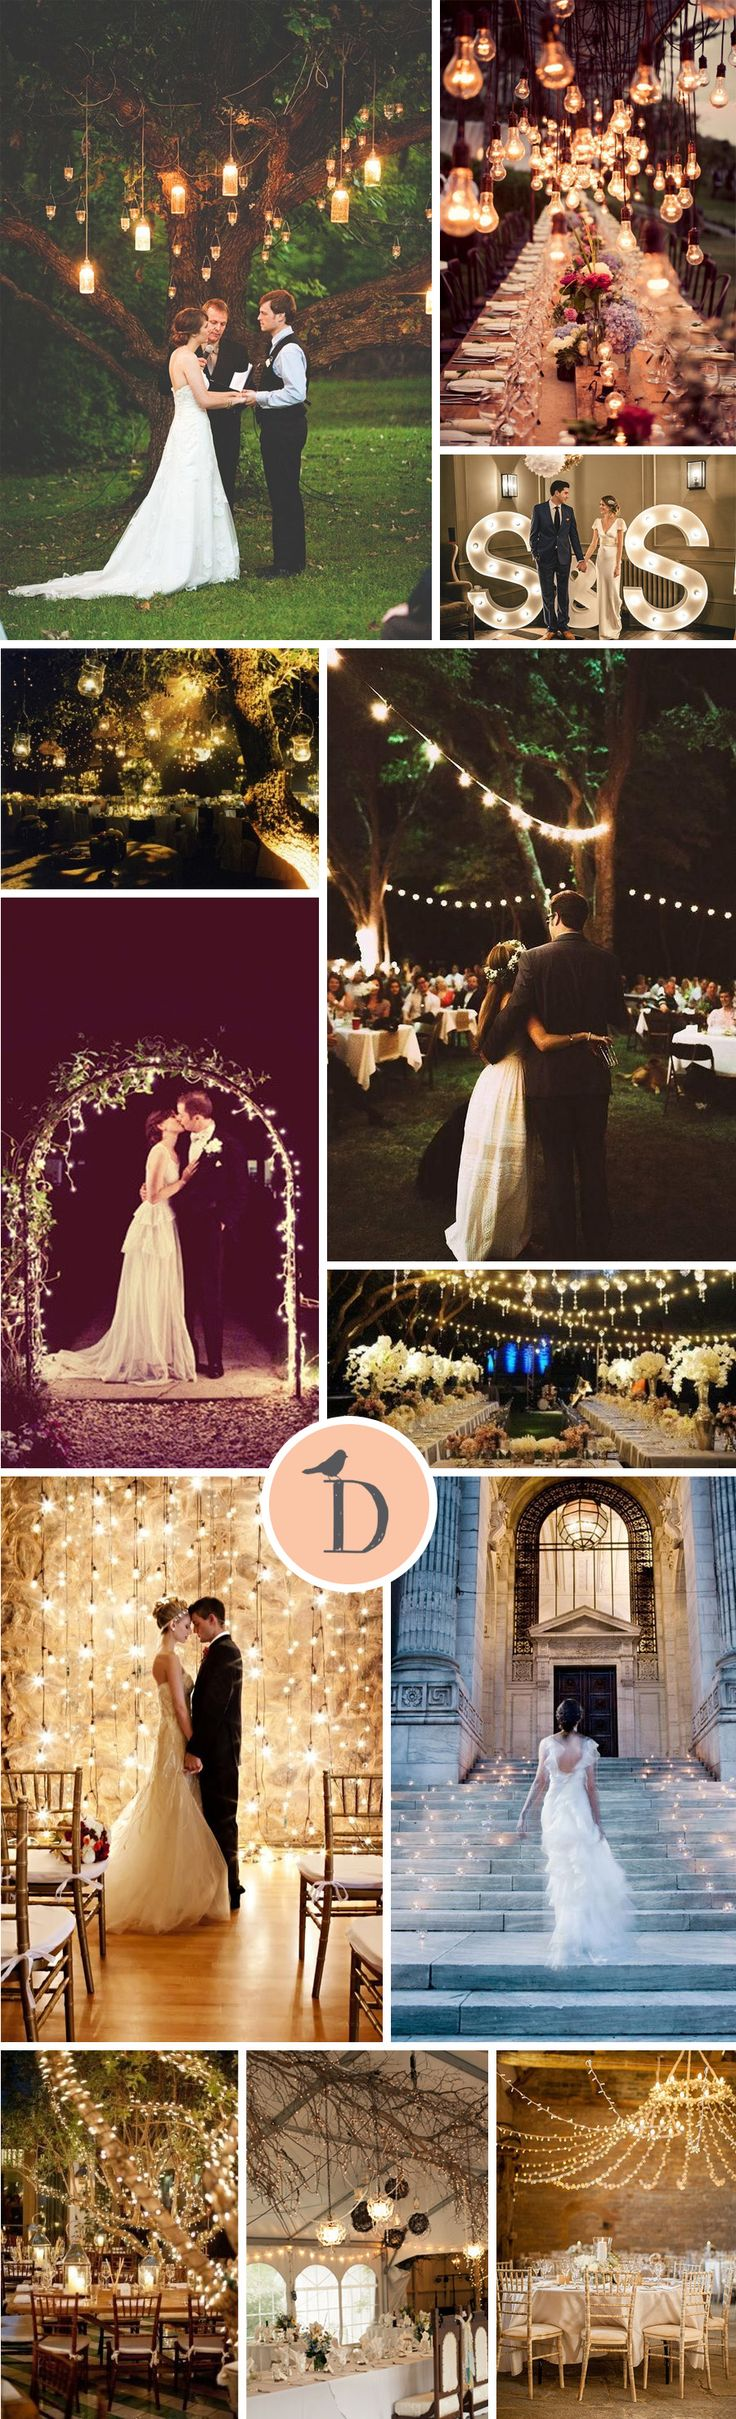 Lighting can be an absolute key to your wedding's style and atmosphere. It is a great place to go wild and create a real statement without blowing the budget. We've collected some stunning wedding lighting inspiration for you, from fairy lights to lanterns